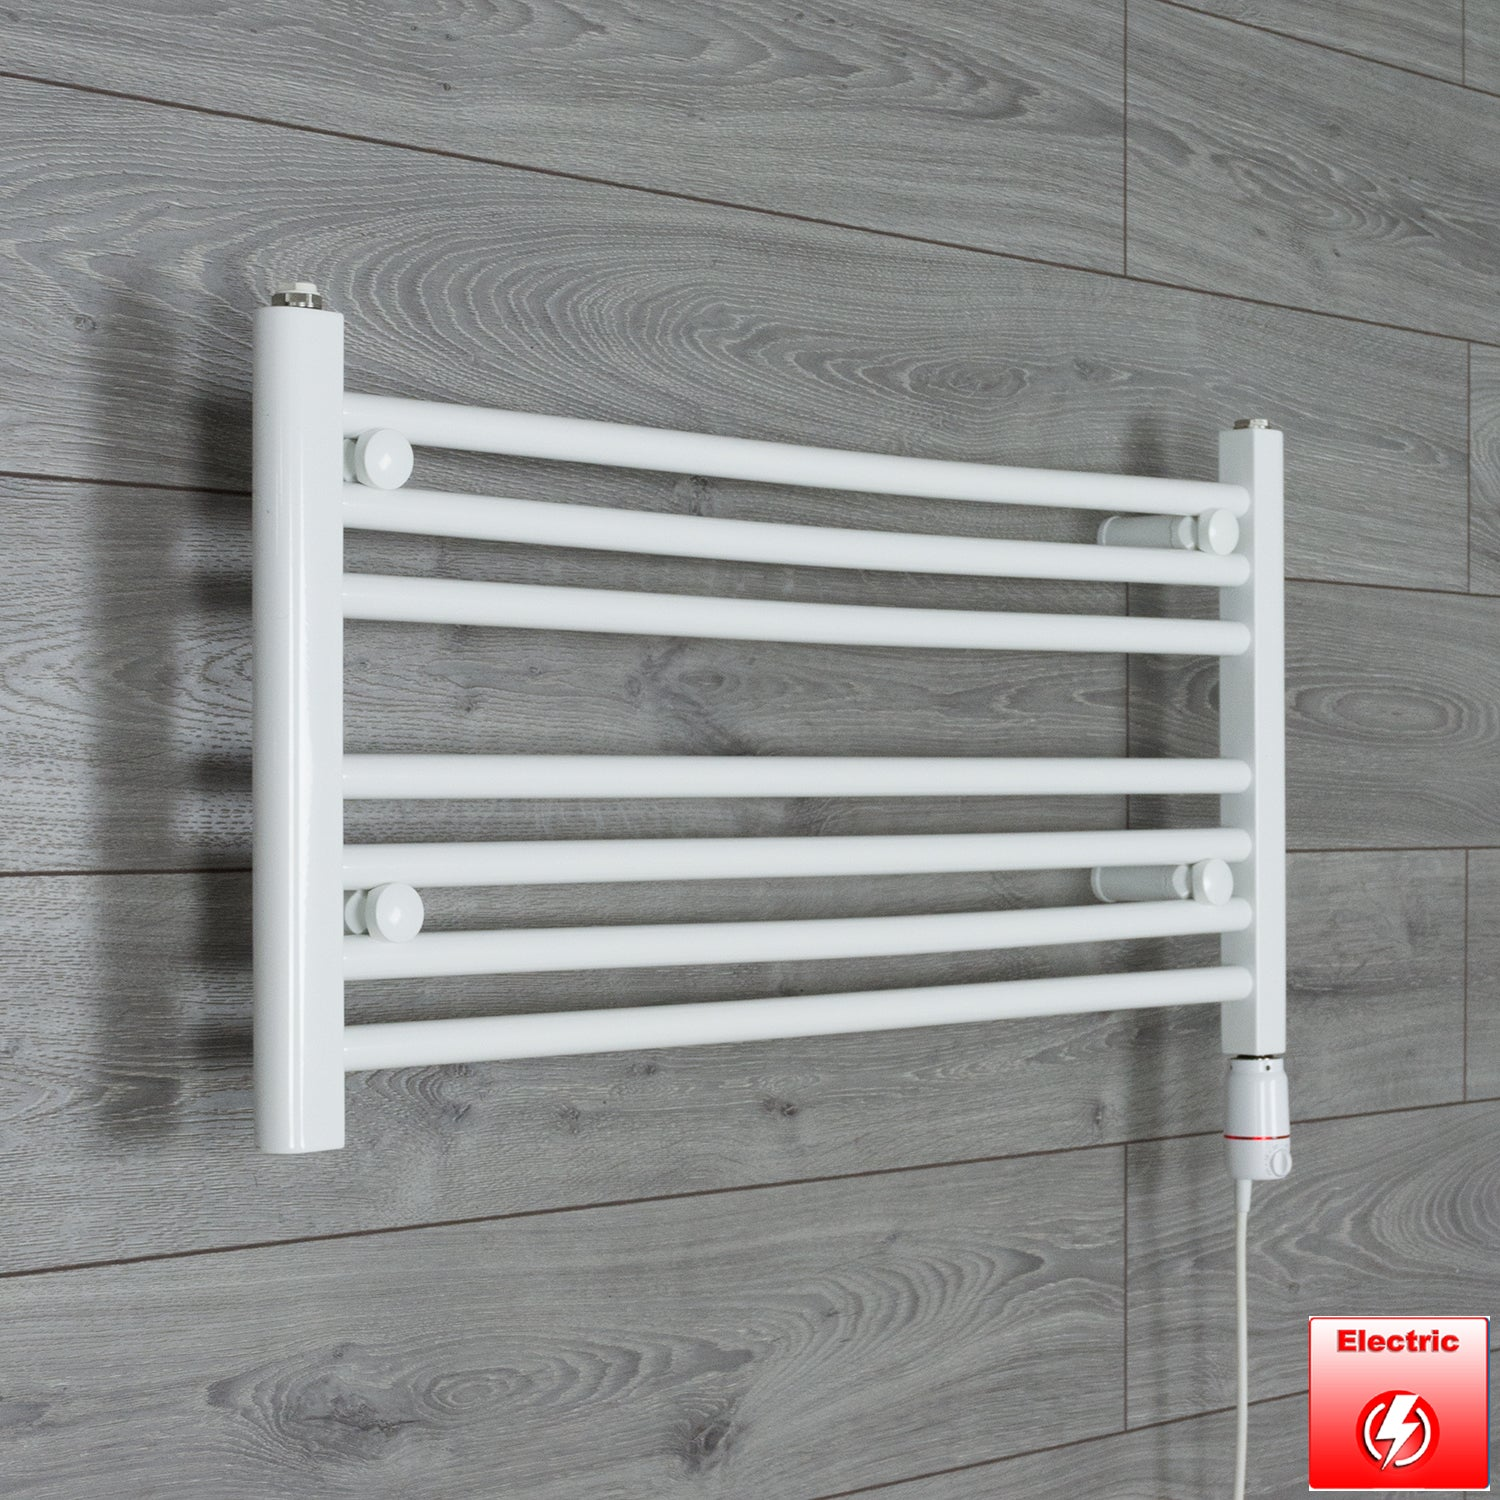 800mm Wide 400mm High Flat WHITE Pre-Filled Electric Heated Towel Rail Radiator HTR,GT Thermostatic